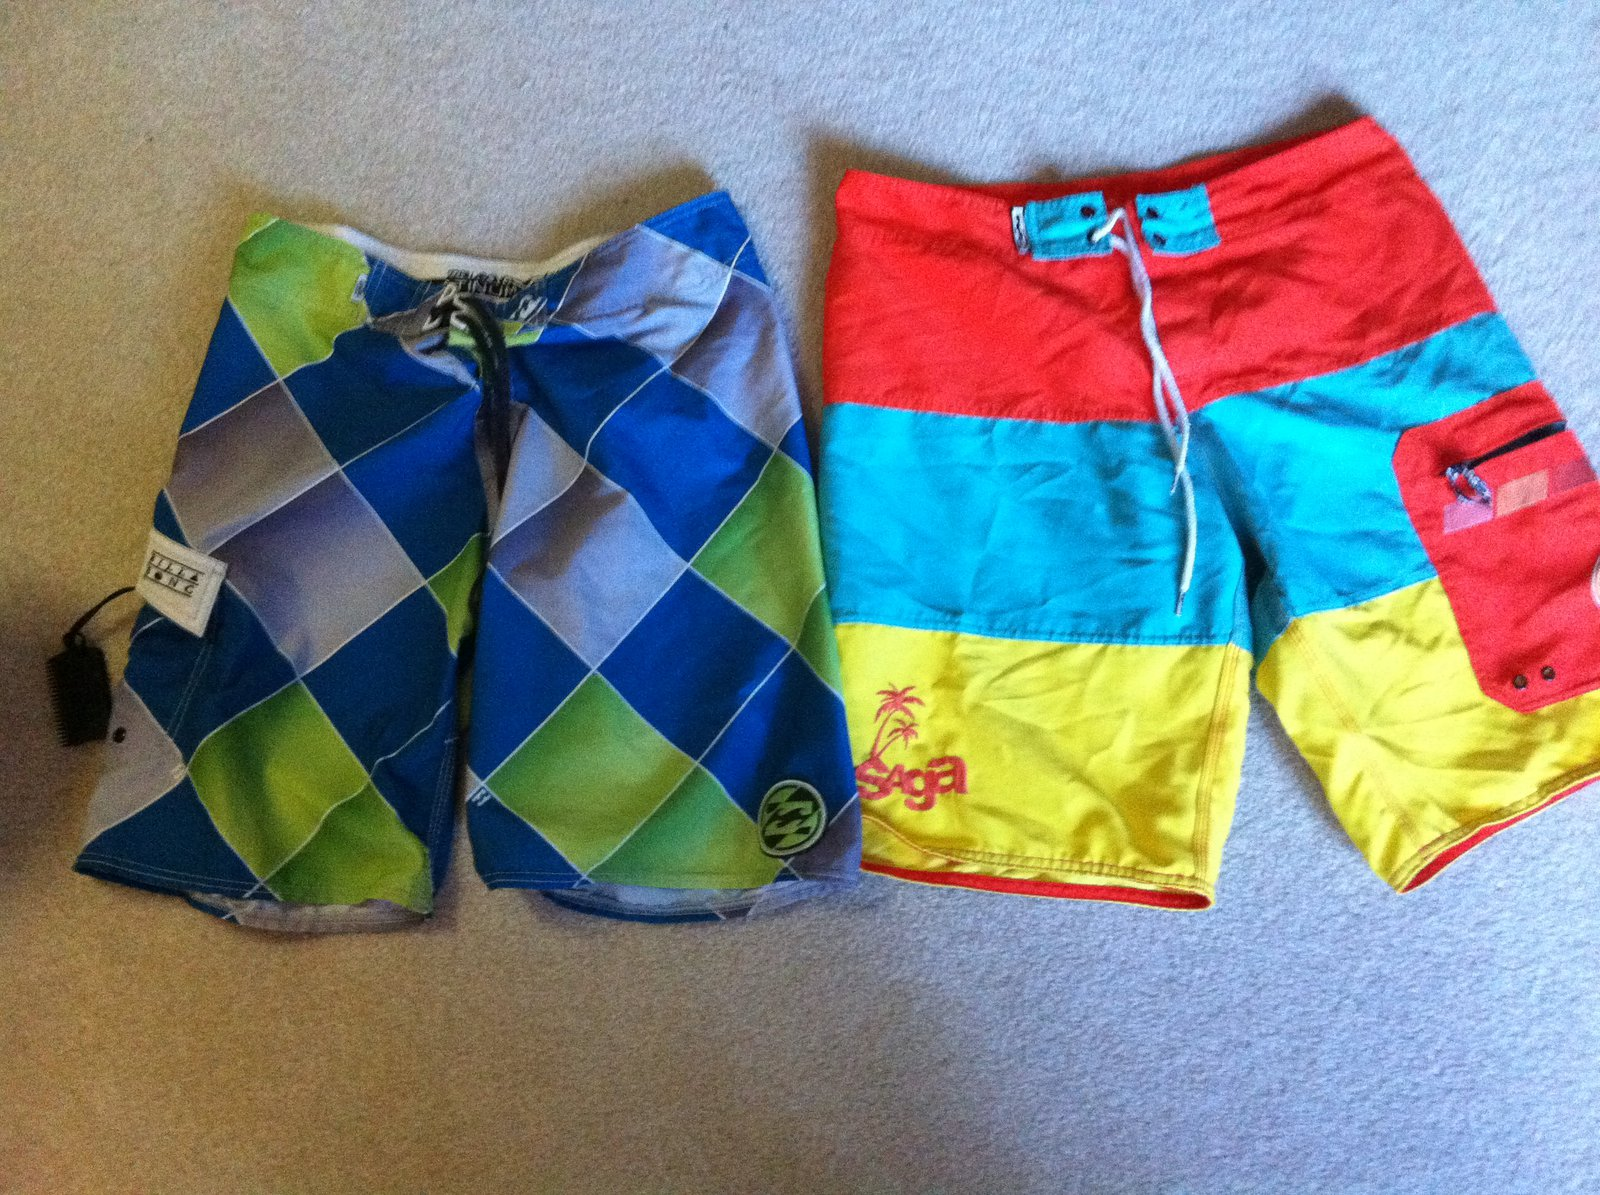 Saga board shorts 32 billabong 31